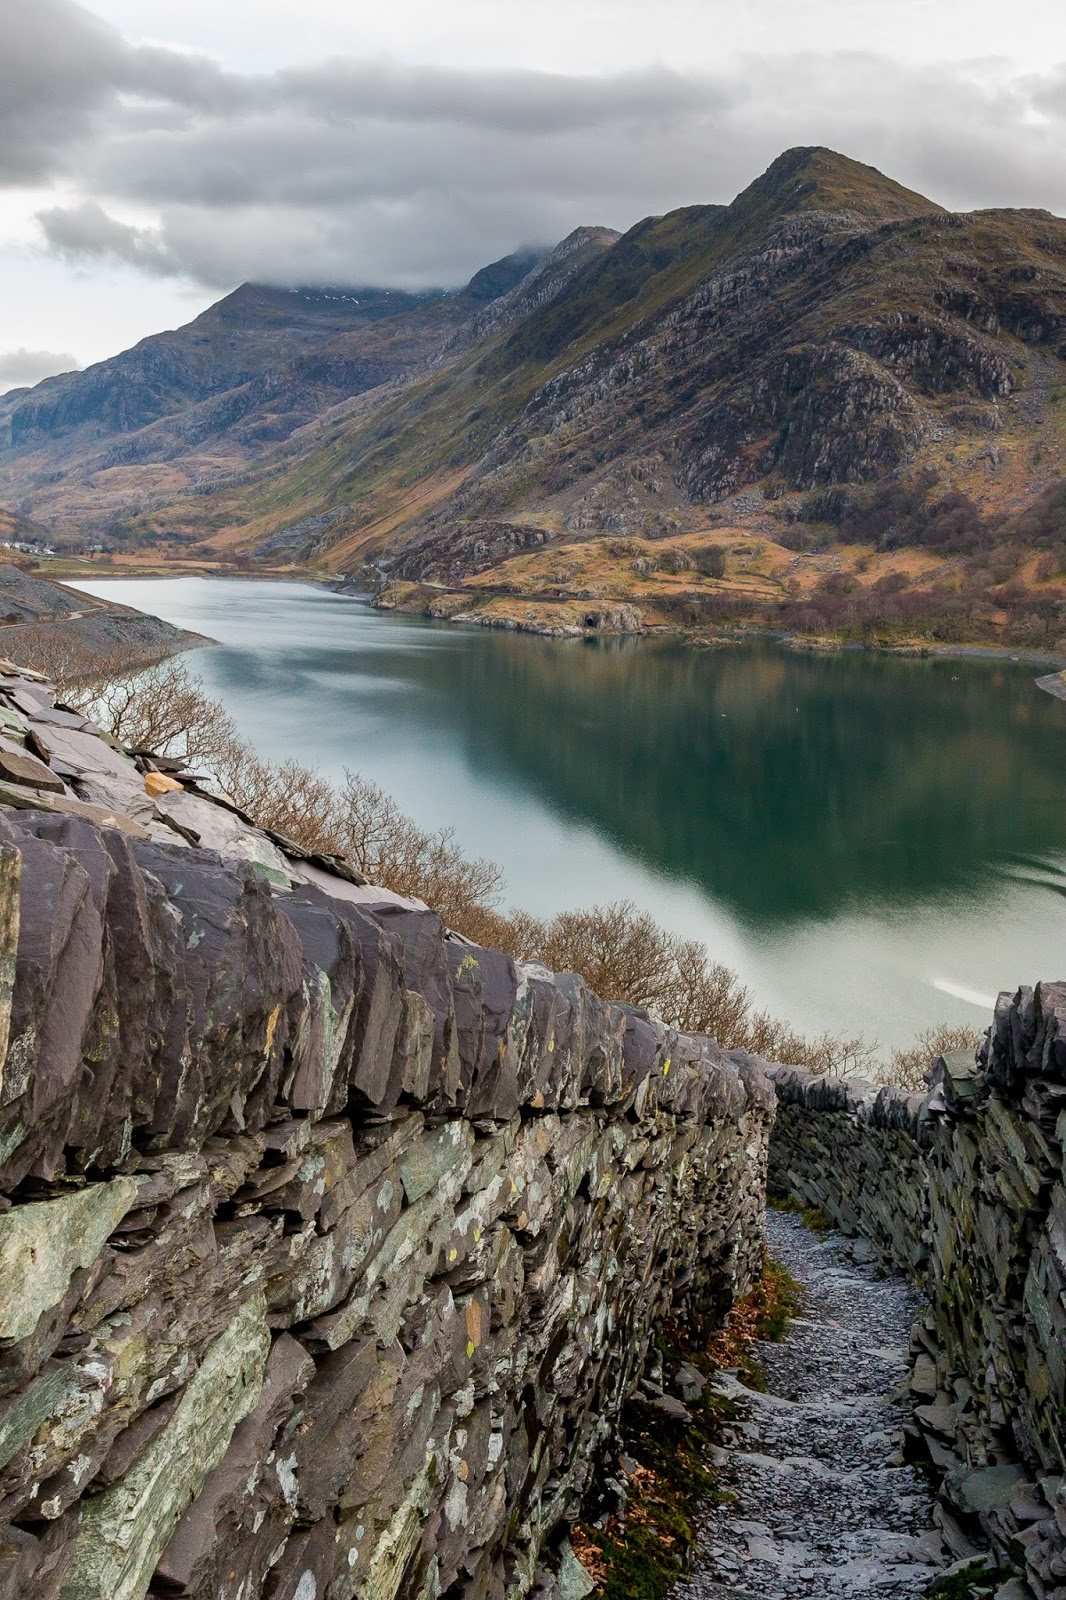 Looking for an awesome and easy hike in Snowdonia? A walk to the Dinorwig Quarry close to Llanberis is the perfect way to see epic landscapes!